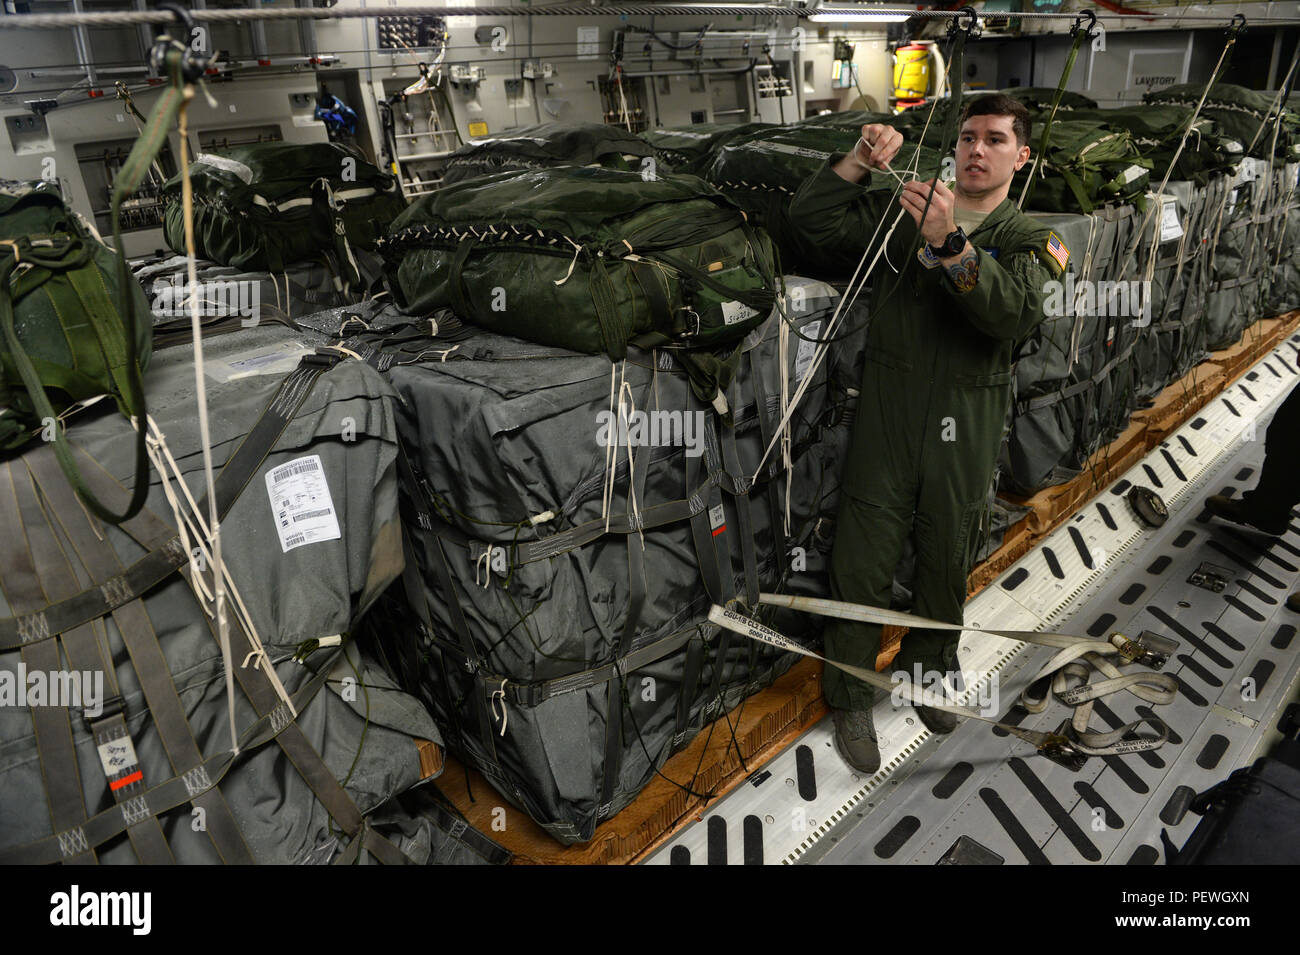 U.S. Air Force Senior Airman Glen Baker, 7th Airlift Squadron, loads a C-17 Globemaster III with container delivery systems from McChord Air Force Base, Wash., during Large Package Week at Pope Army Airfield, N.C., Feb. 4, 2016. Large Package Week leads up to Joint Operational Access Exercise 16-5, where in Army and Air Force units work together to improve interoperability for worldwide crisis, contingency and humanitarian operations. (U.S. Air Force photo by Staff Sgt. Sandra Welch) Stock Photo